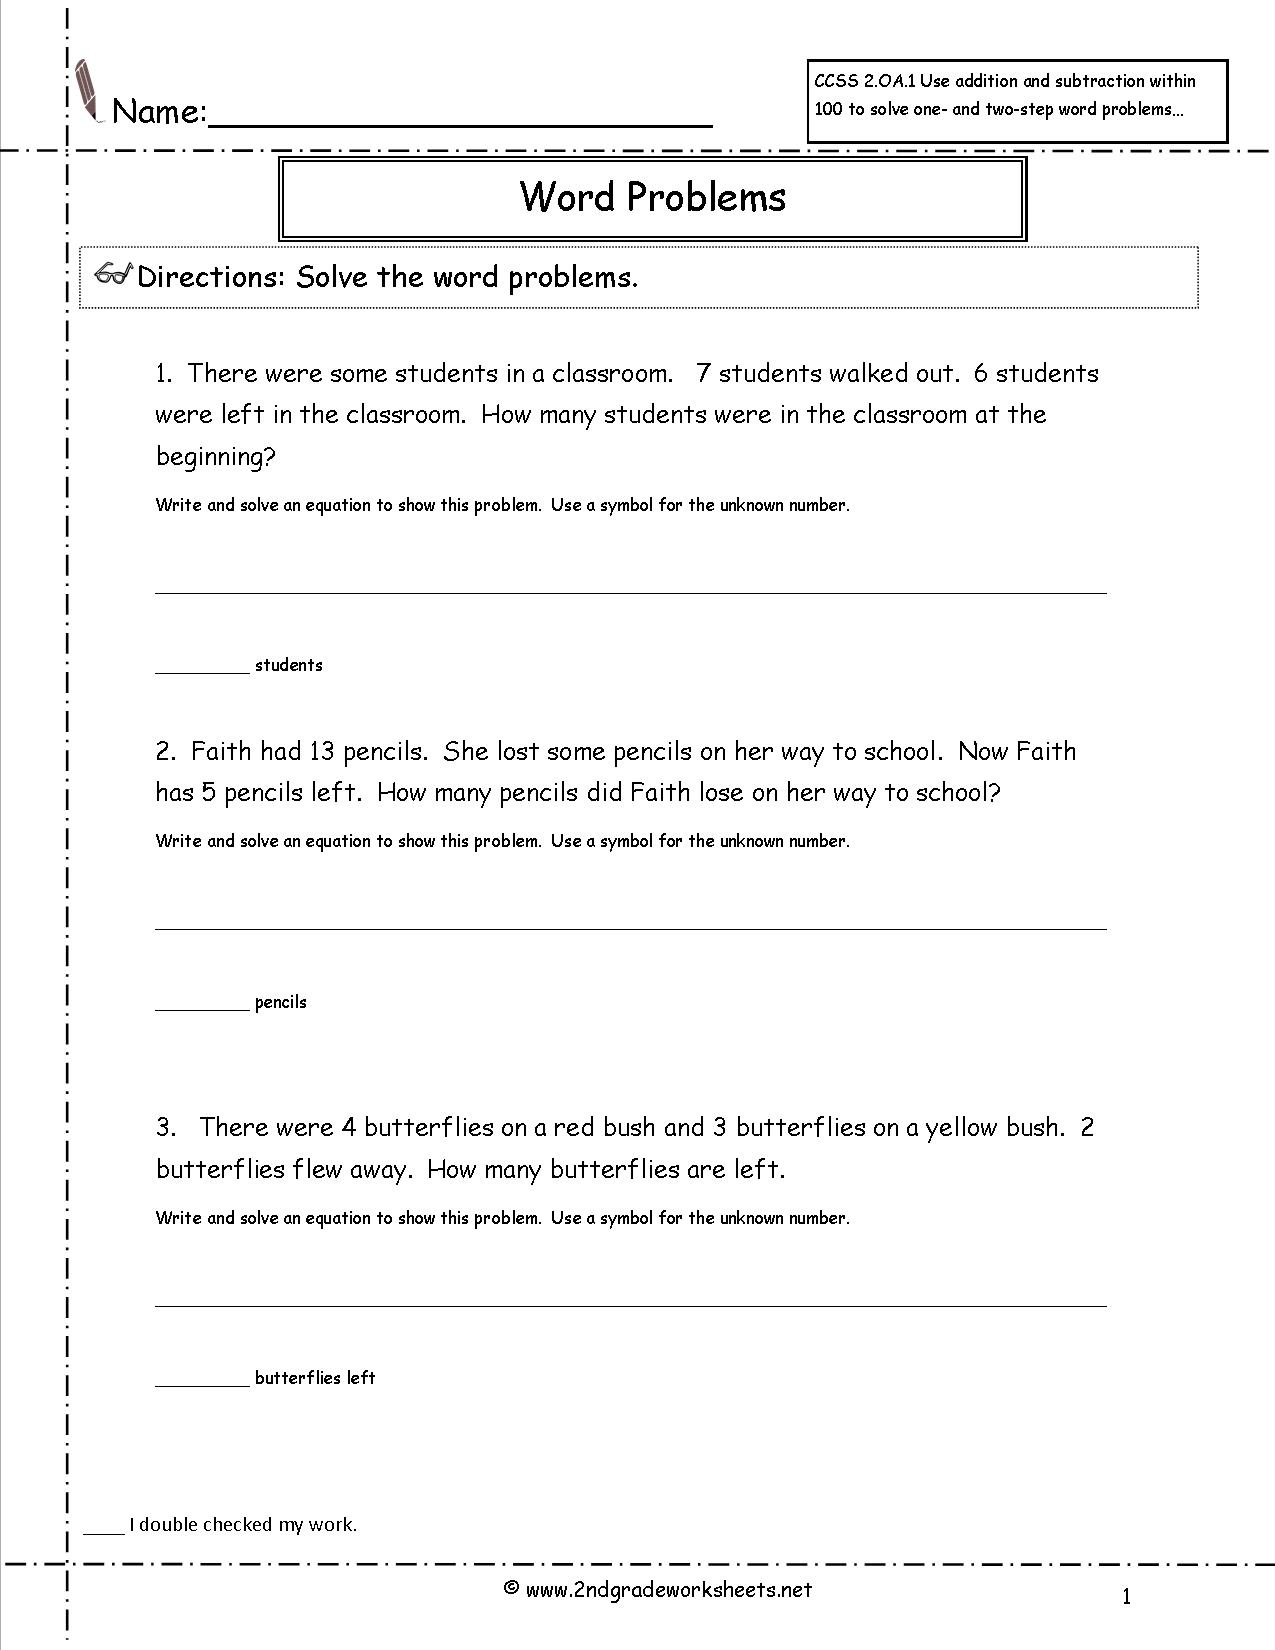 14 Best Images Of Subtraction Worksheets Within 100